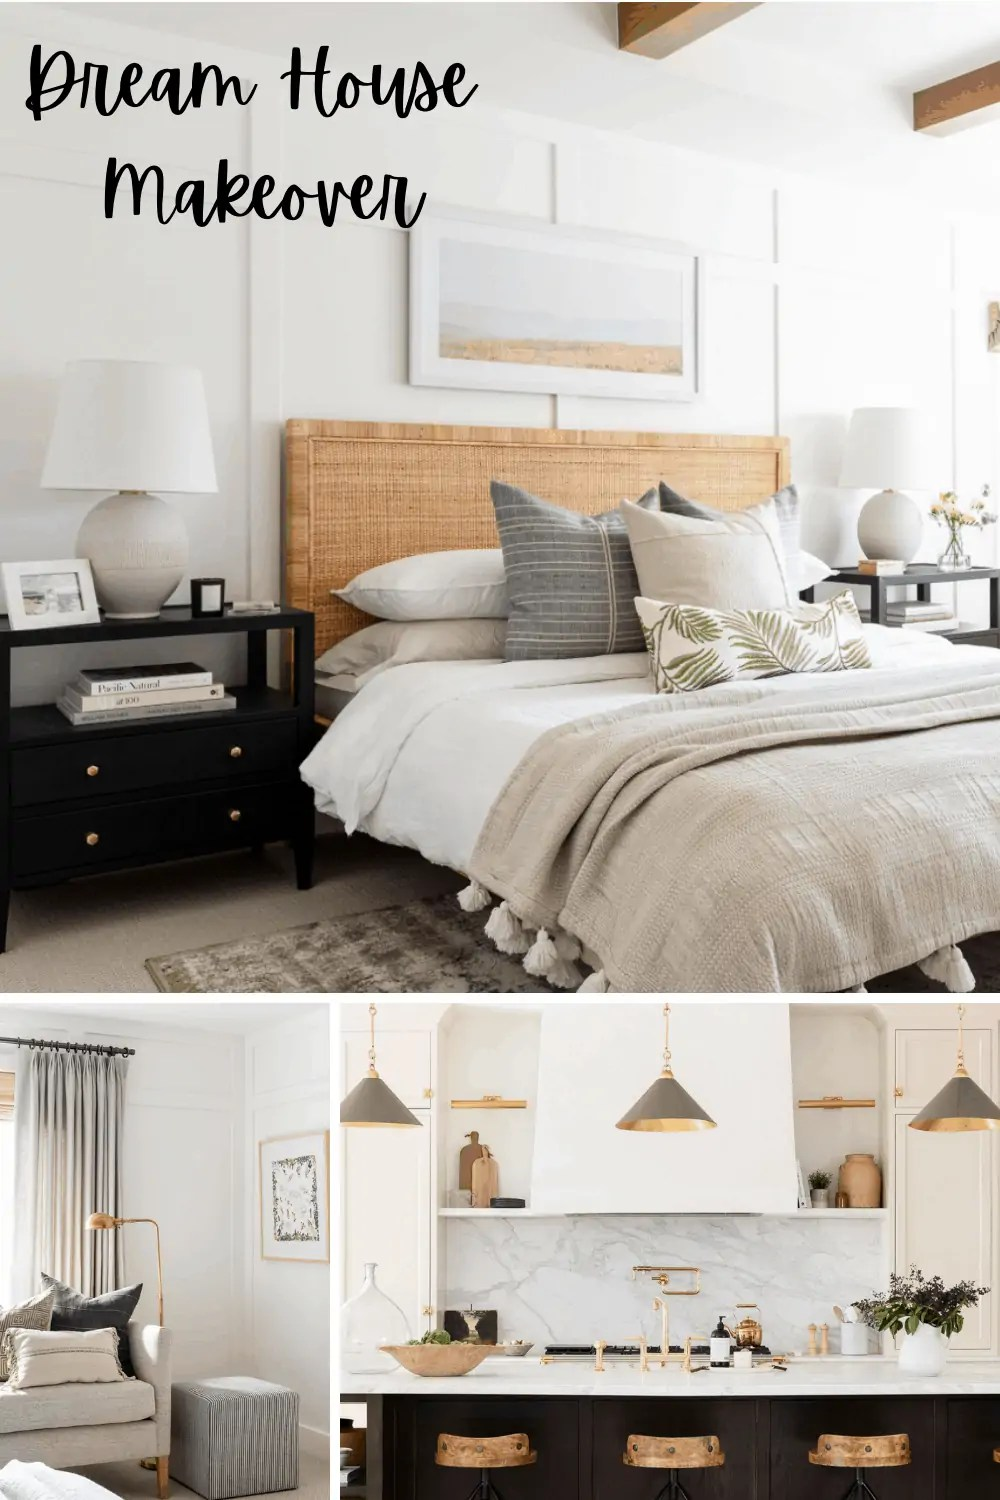 Studio McGee's Netflix Show with a coastal bedroom and Dark Kitchen Island